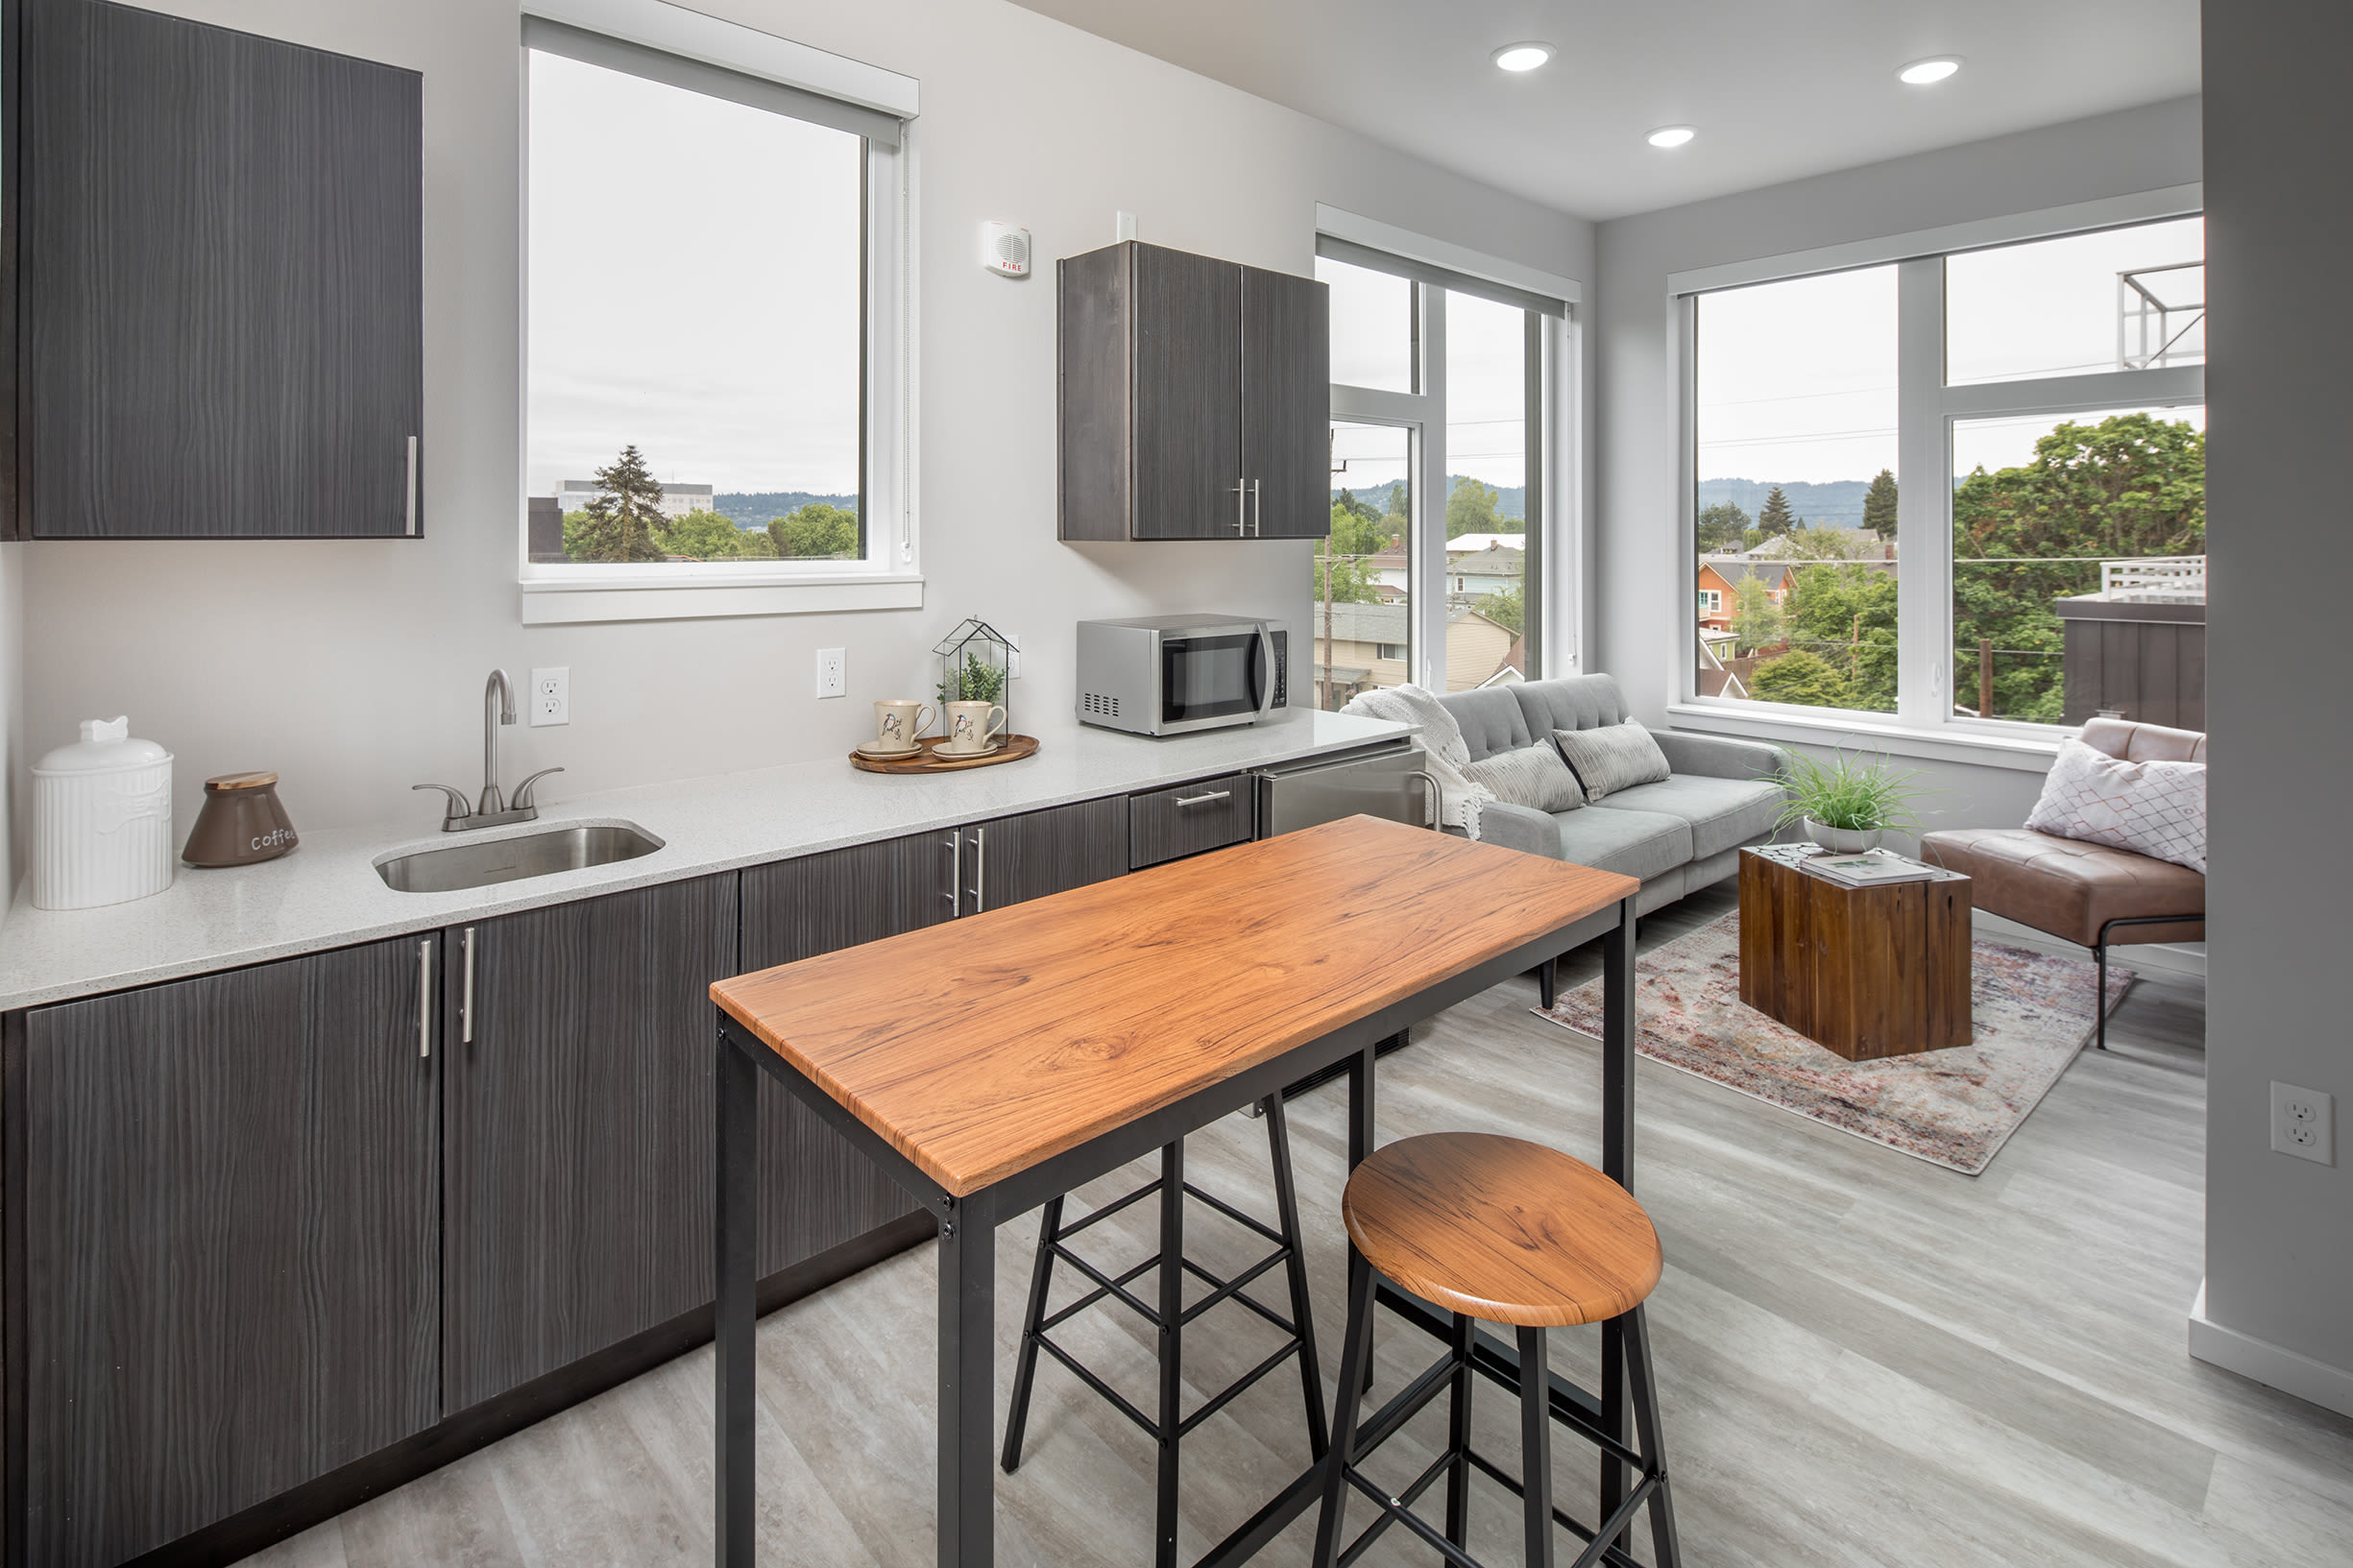 A kitchen island at Ascend in Portland, OR